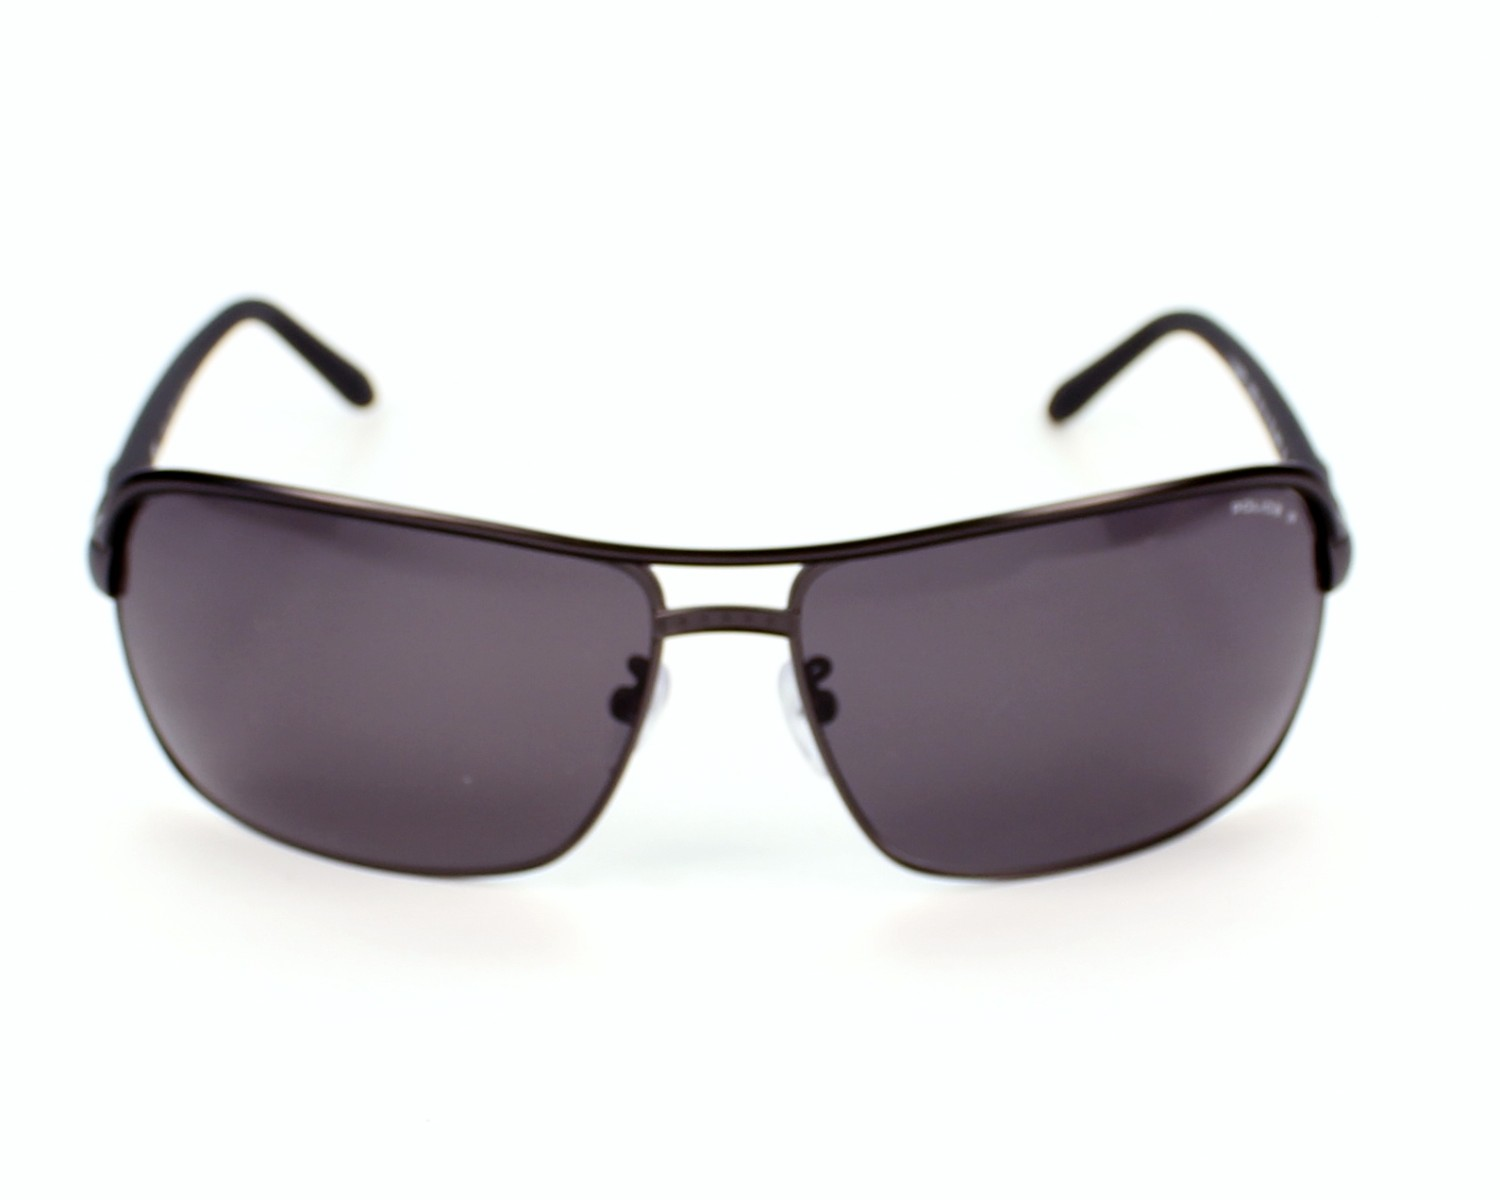 36e0afb707 Sunglasses Police S-8852 8H5P - Grey Black front view